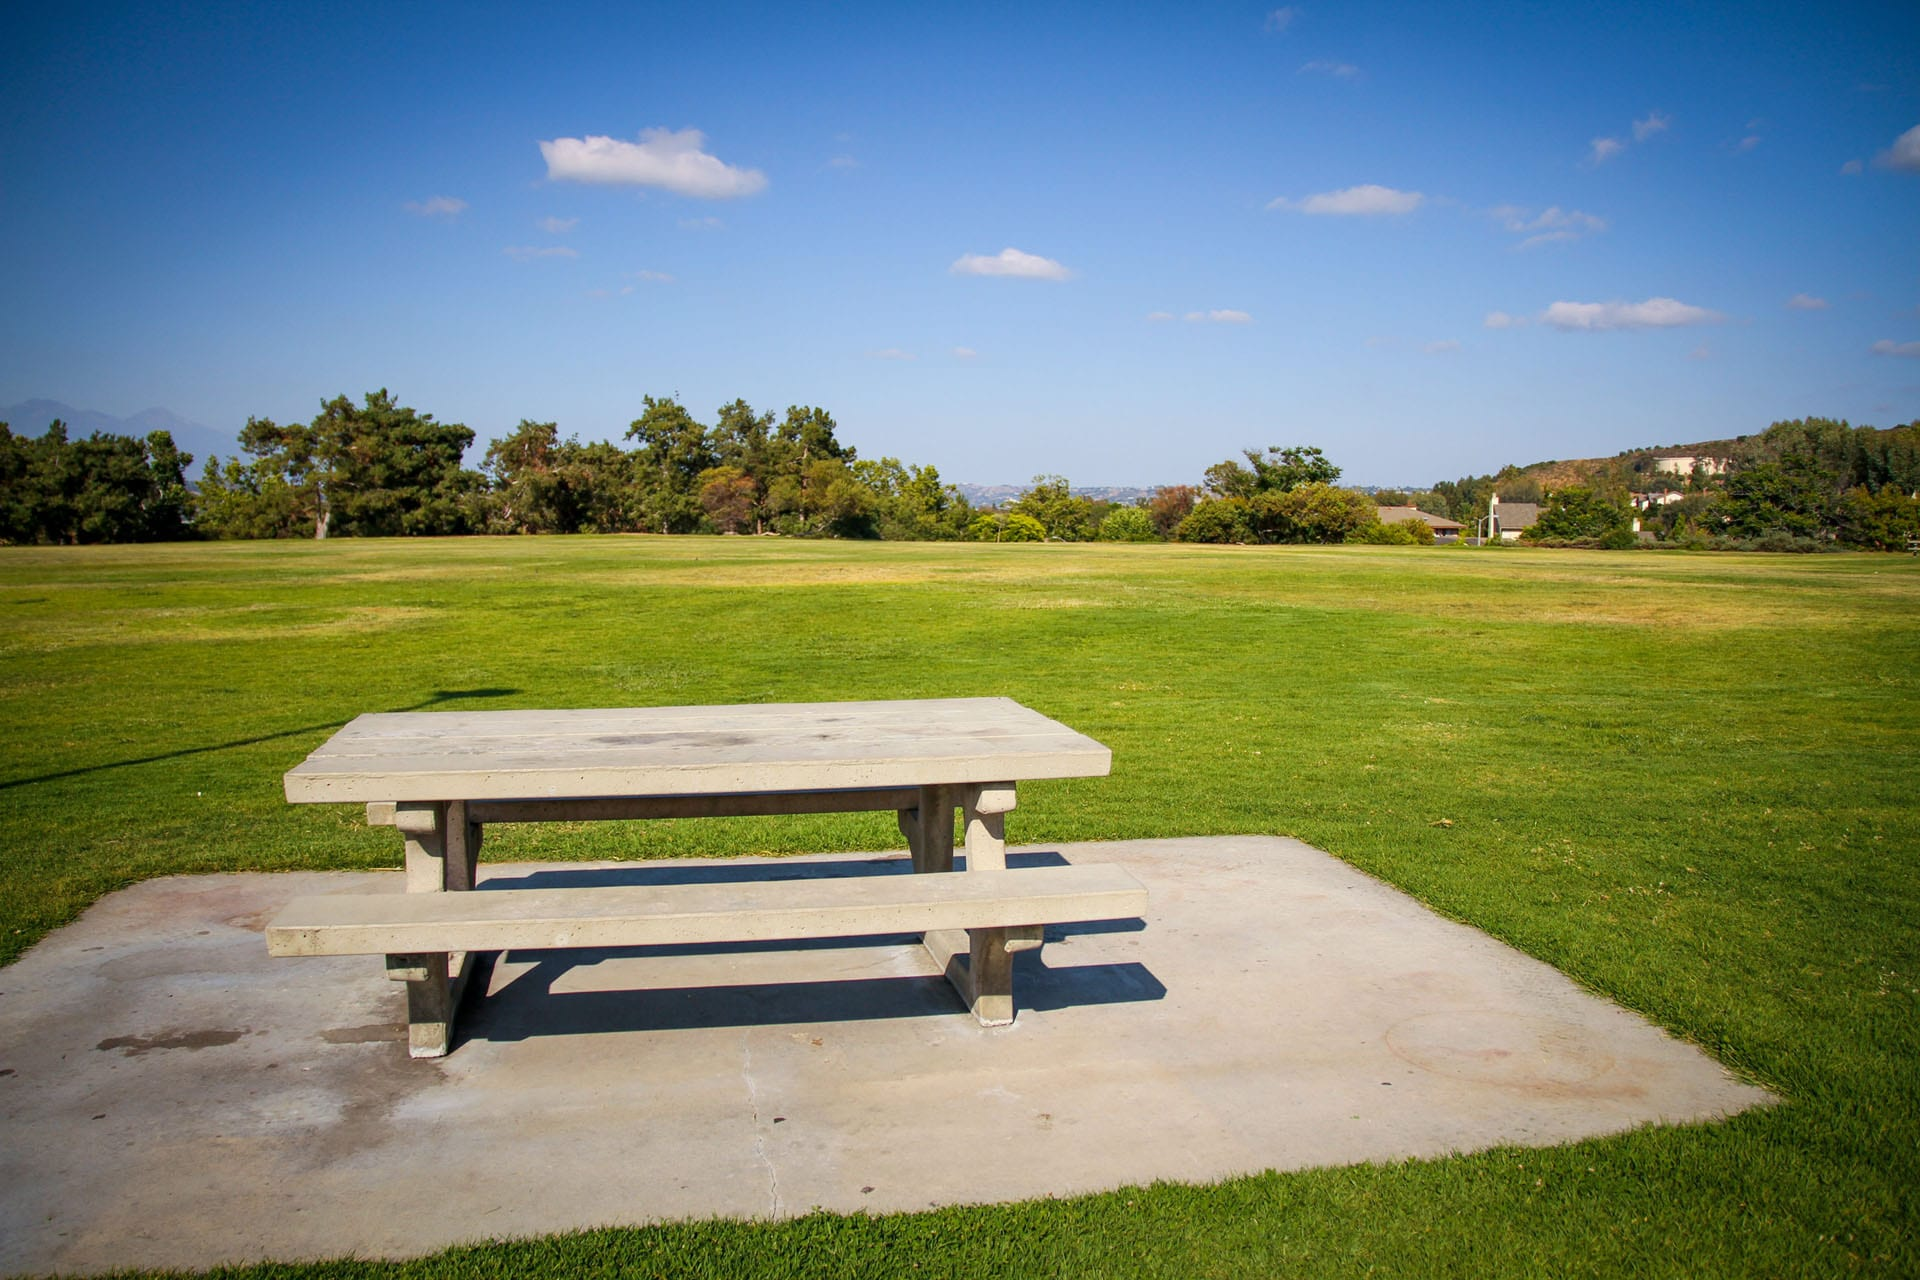 Picnic table on the grass